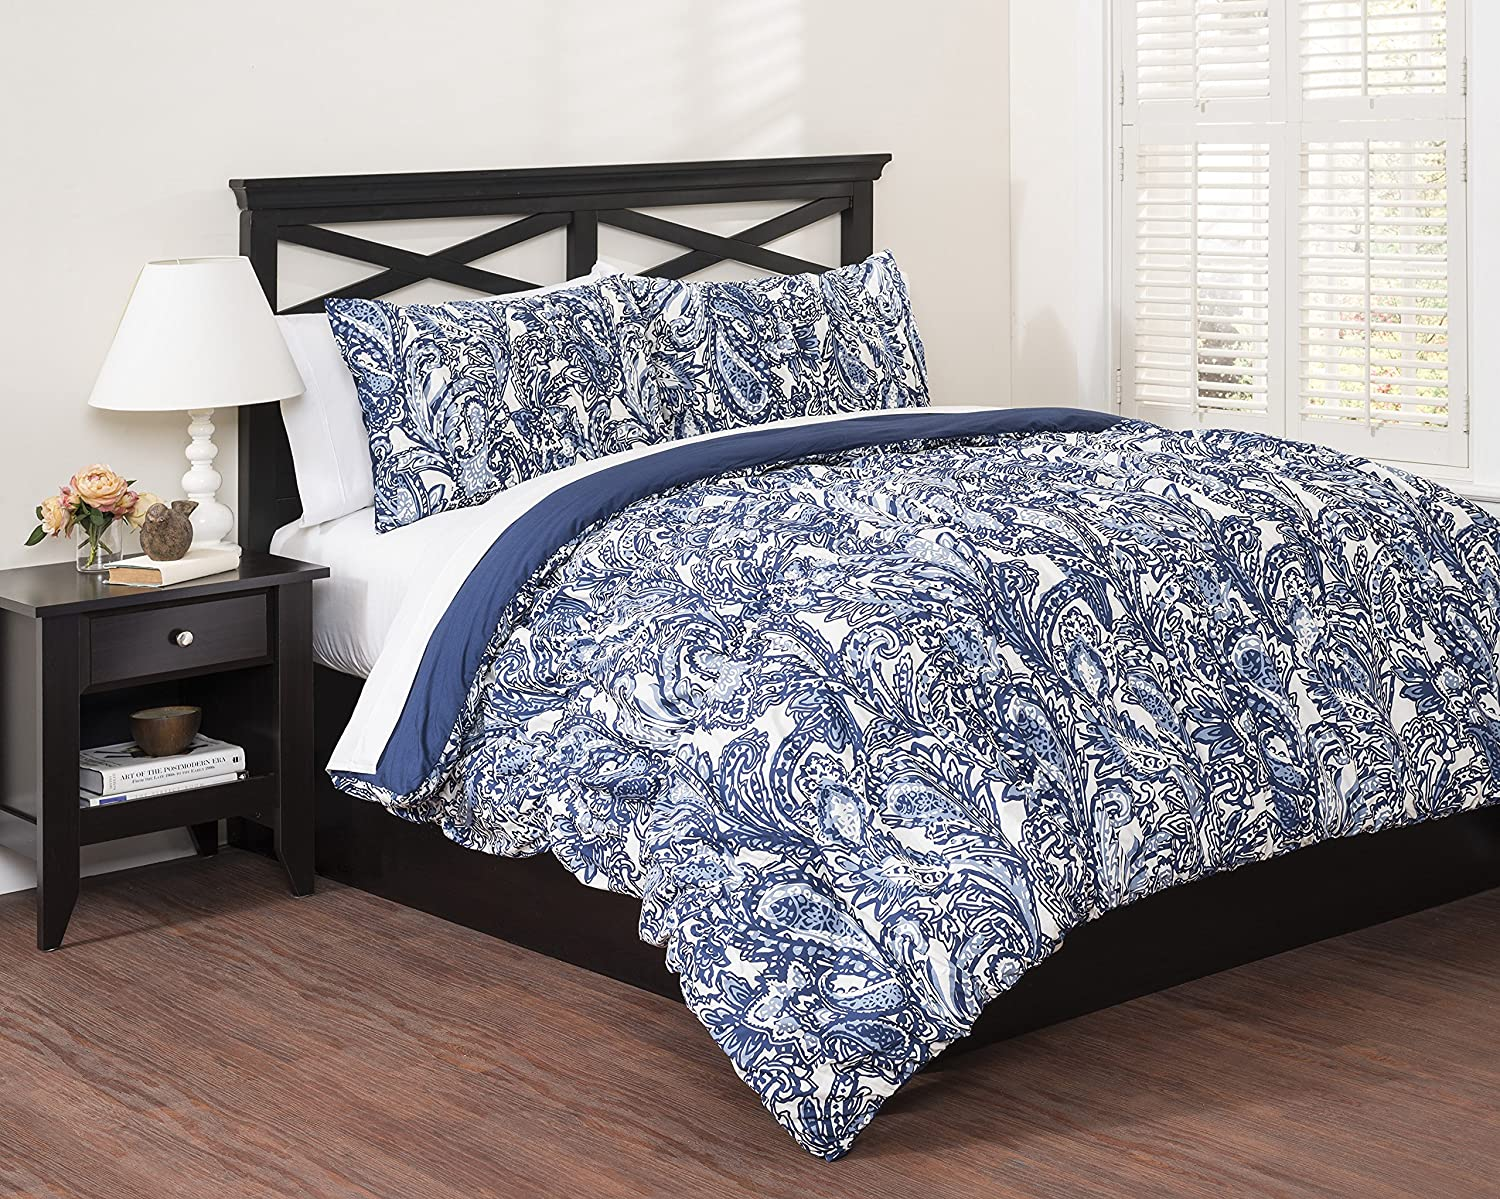 Republic Paisley Indigo Reversible Comforter Set, Full/Queen, Full/Queen